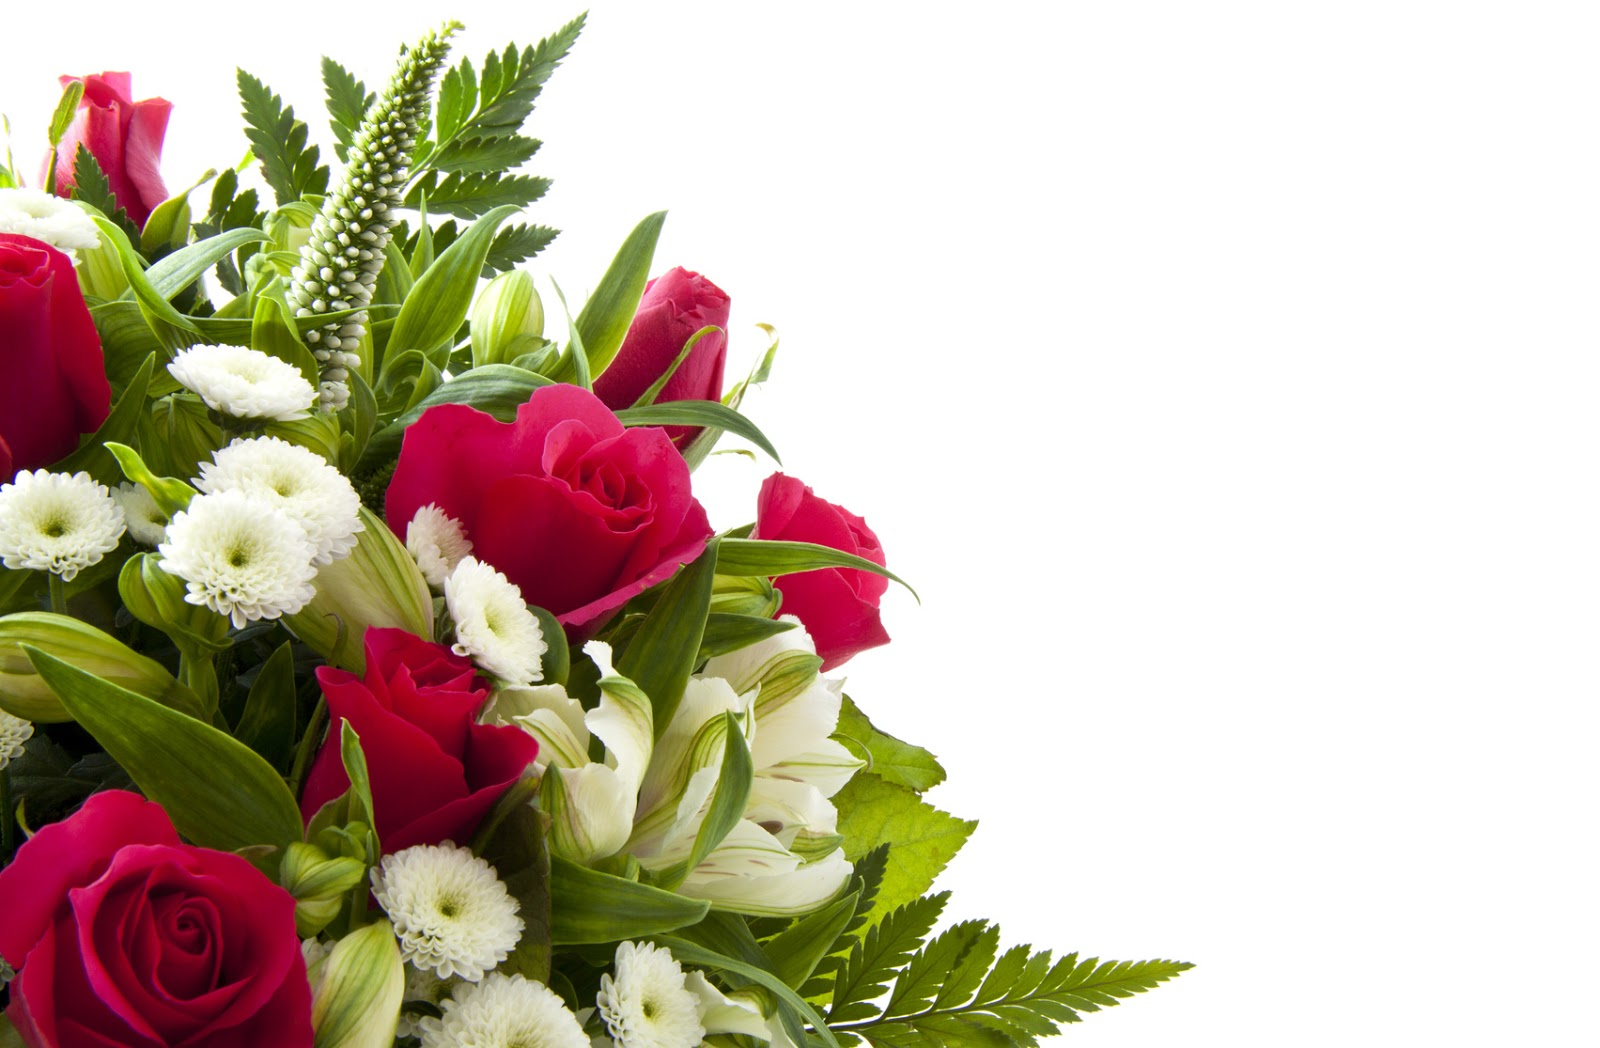 Green Valley Floral: Funeral Flowers - A Tradition of ...